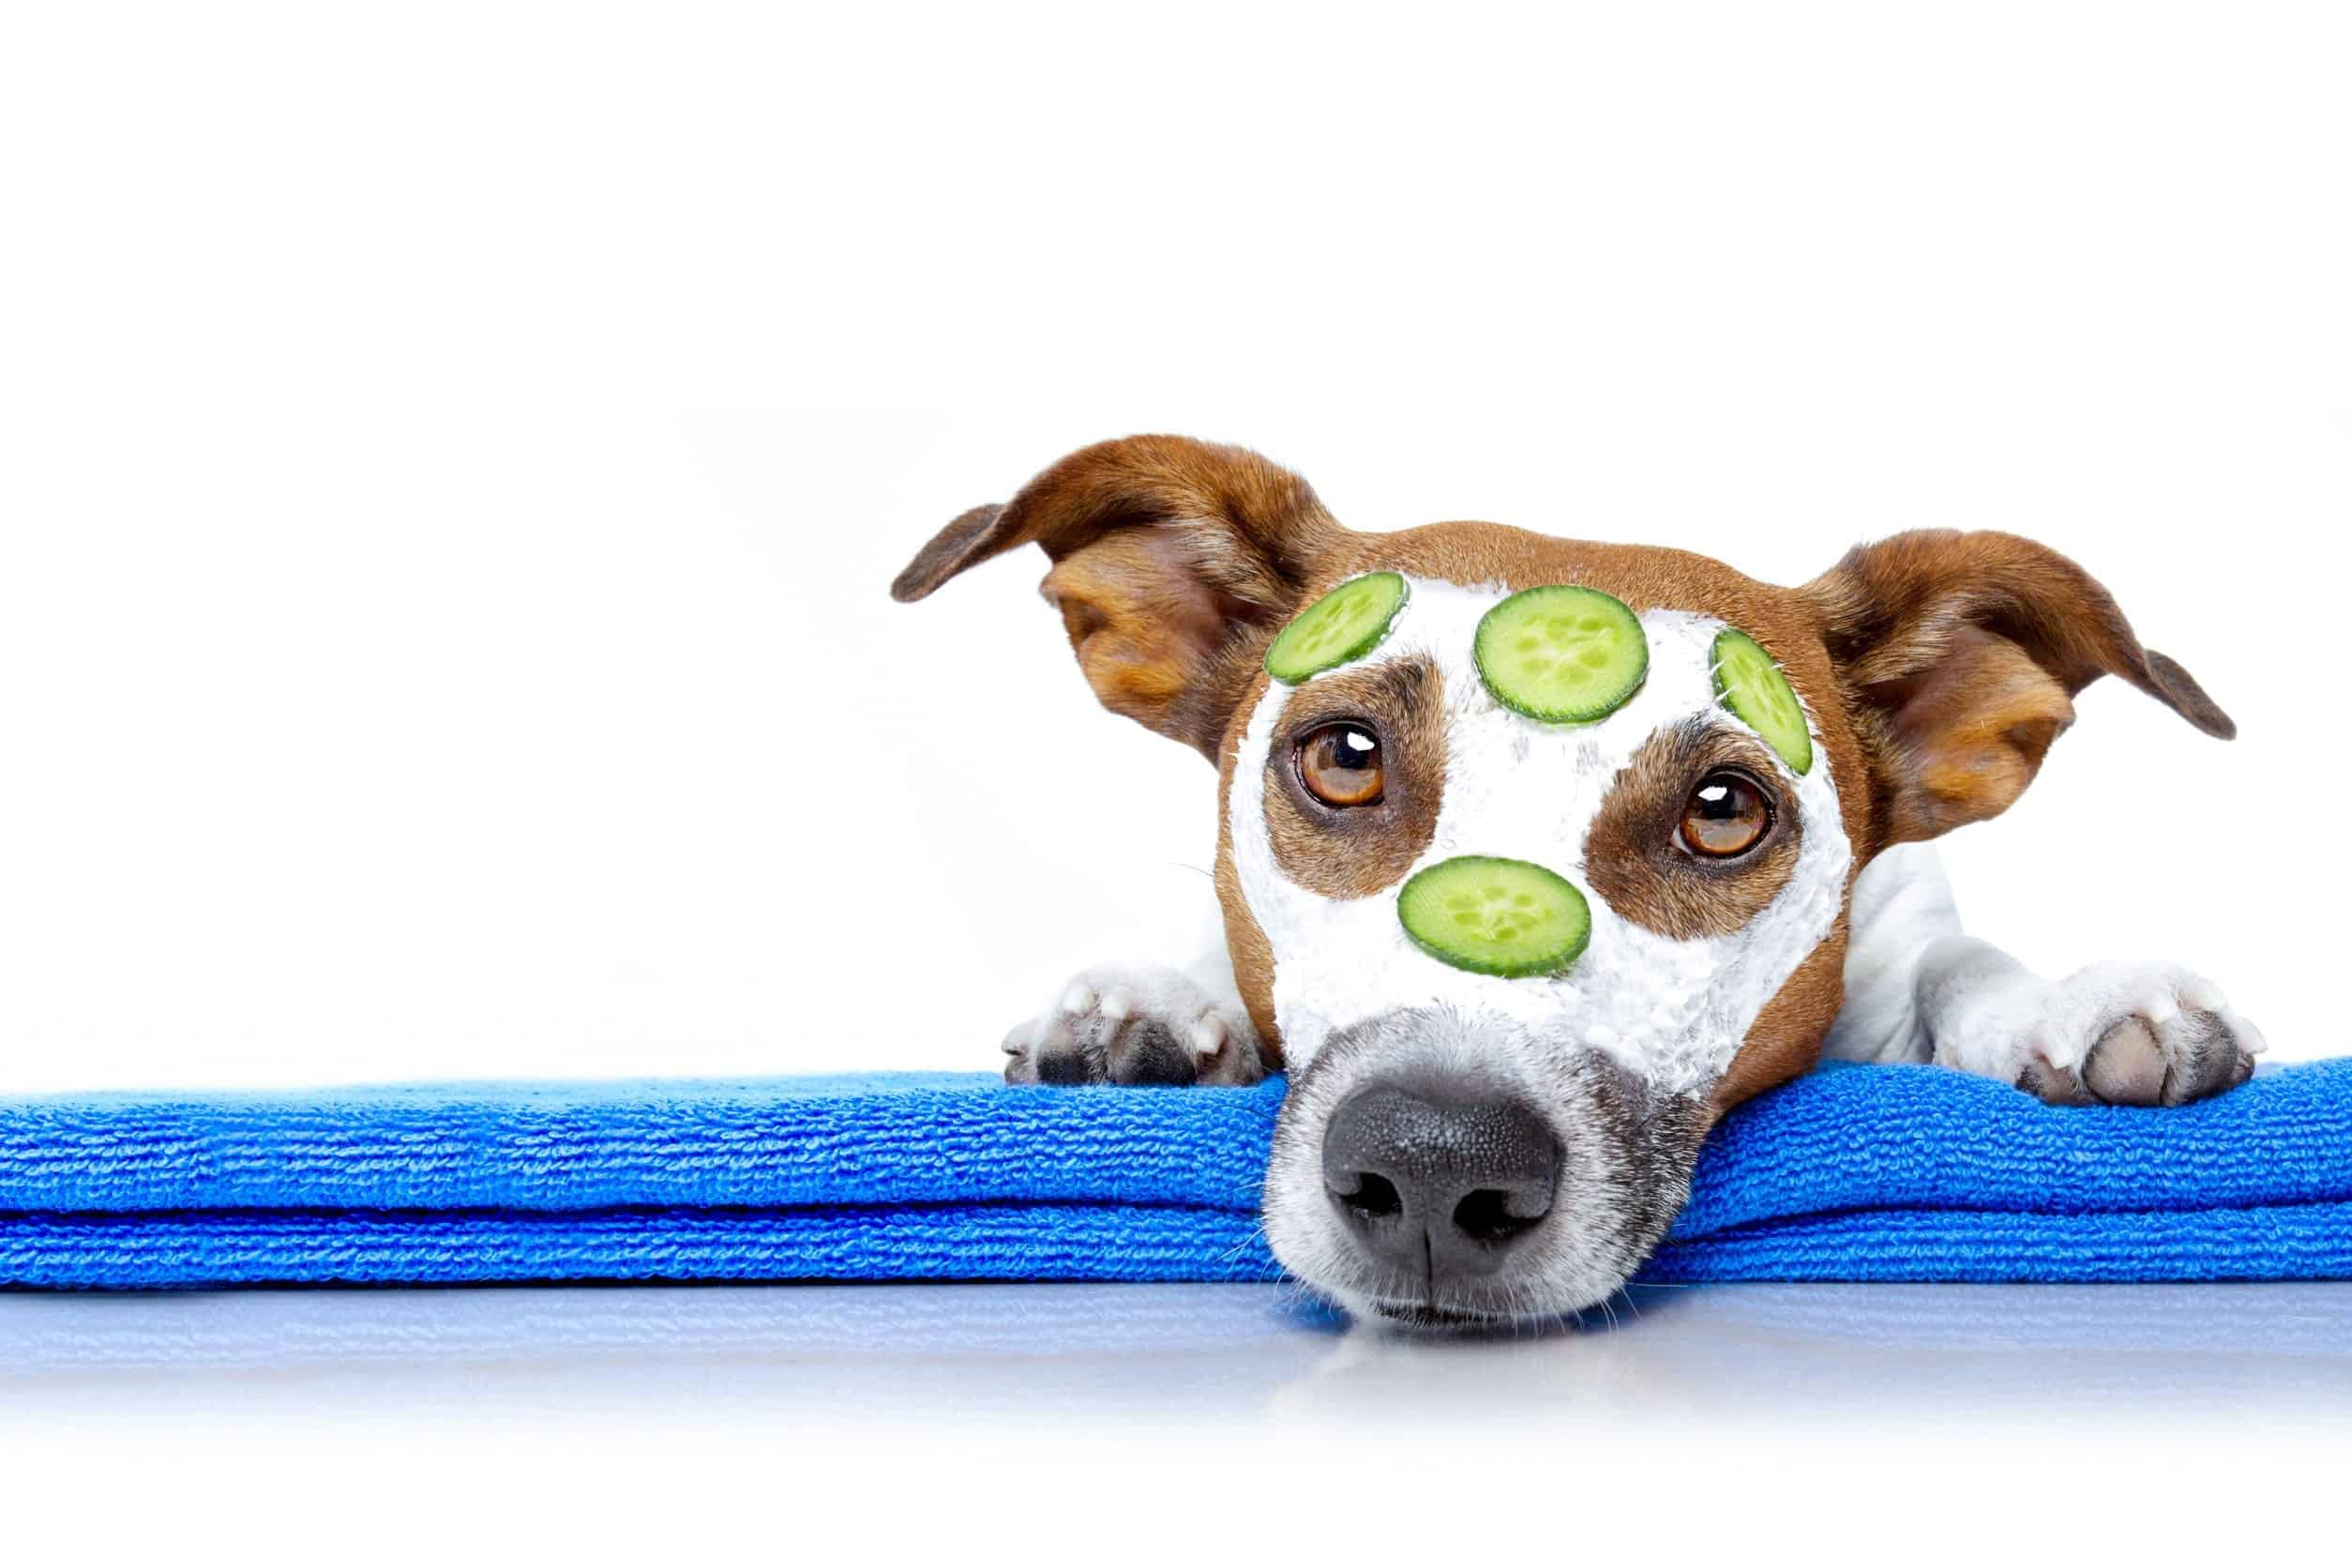 Human Food for Dogs: Can Dogs Eat Cucumbers?